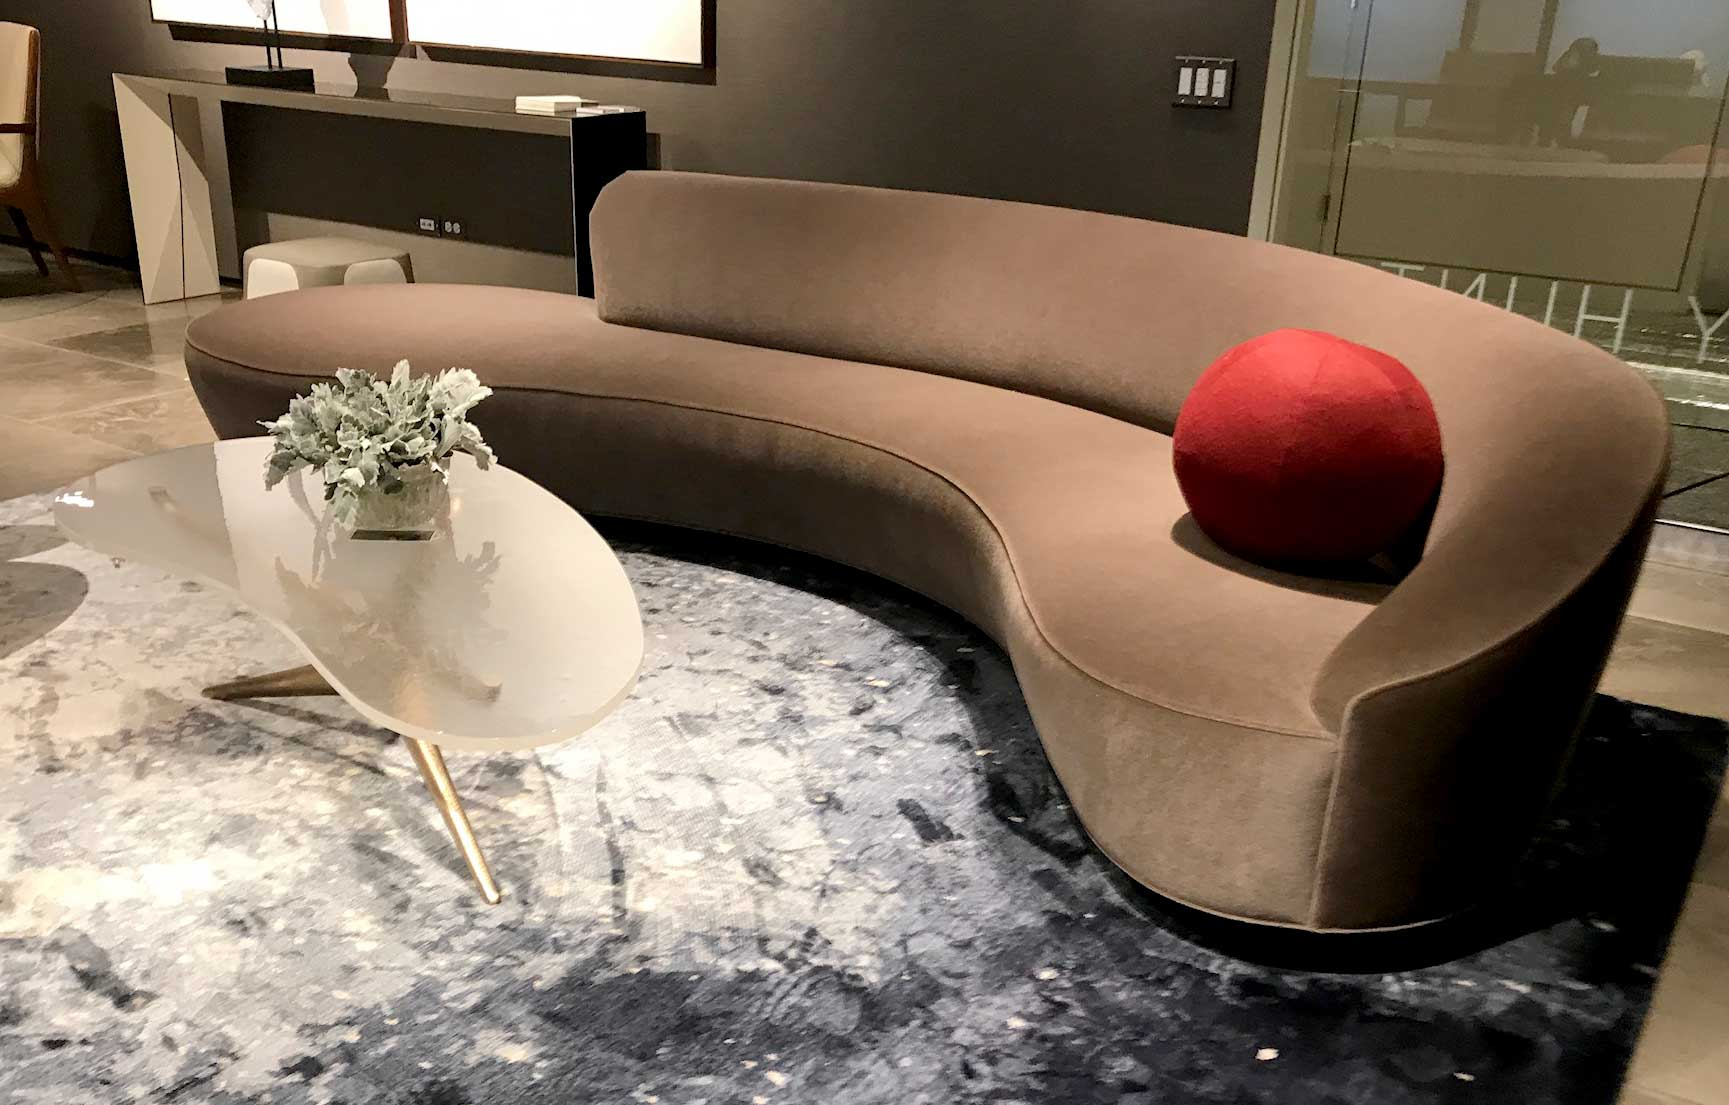 5 Trends We Saw at NeoCon 2018 - from Unisource Solutions - 1. Organic Furniture shapes